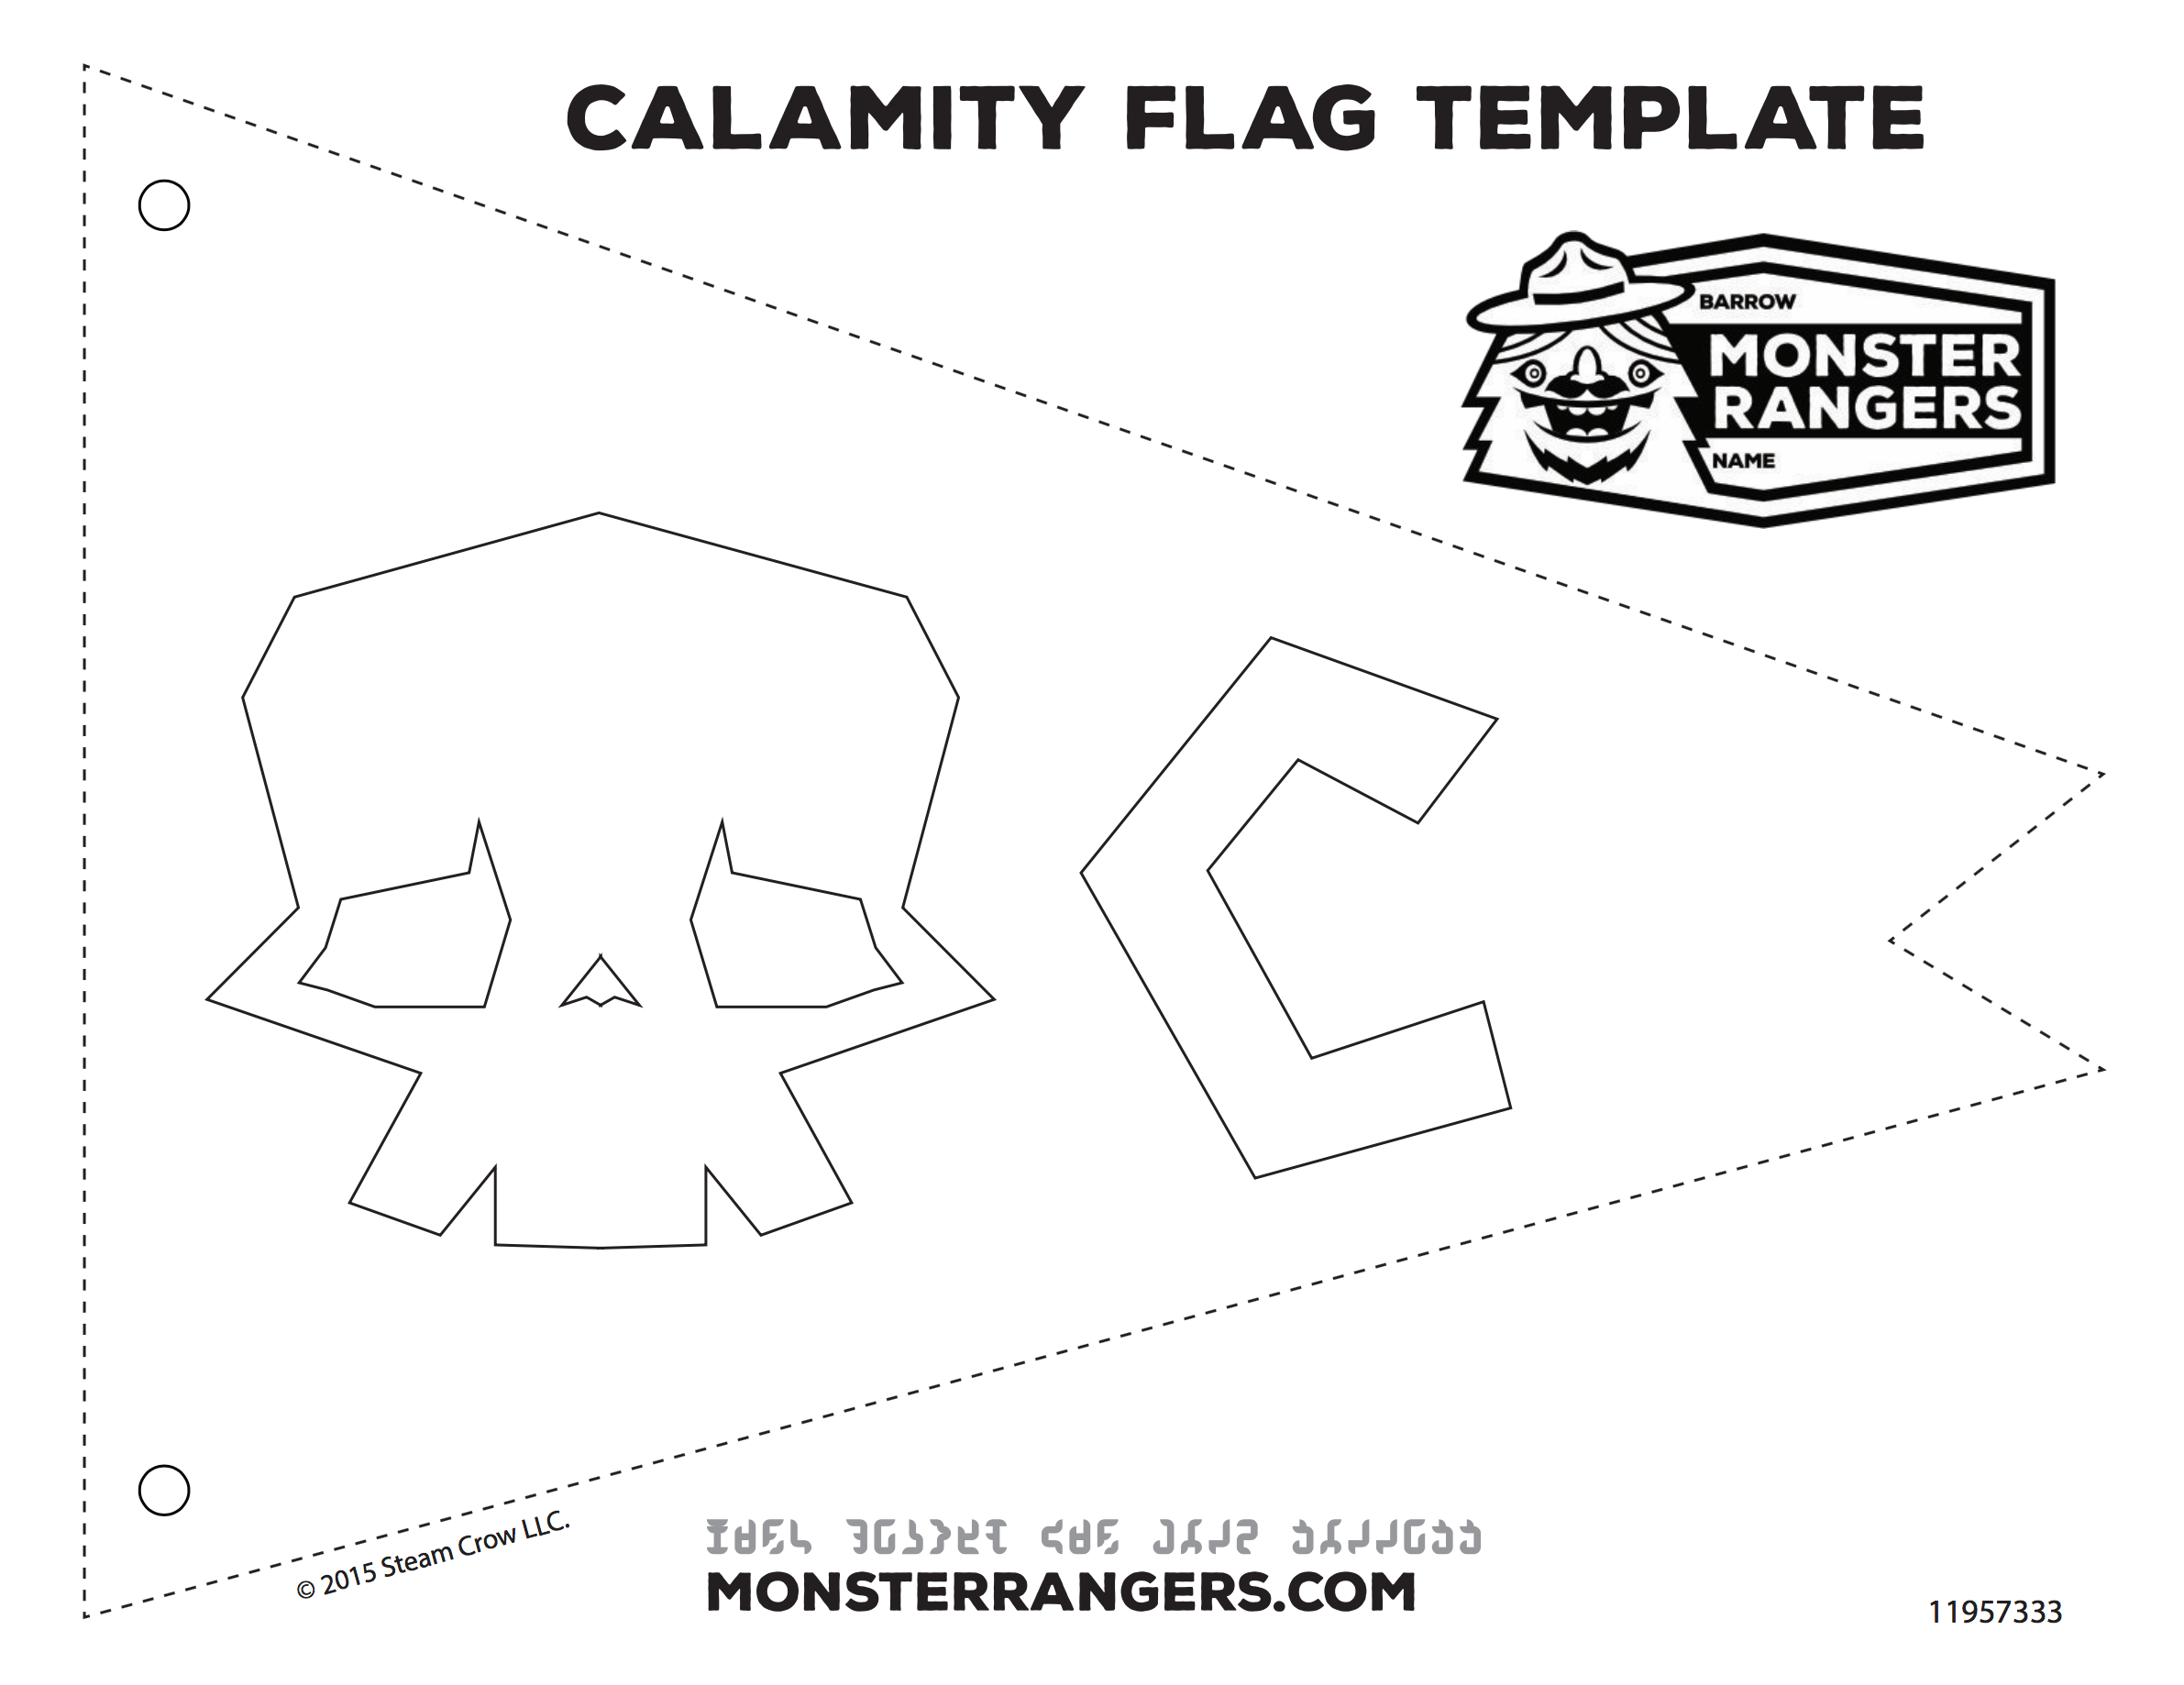 Calamity Flag Graphic